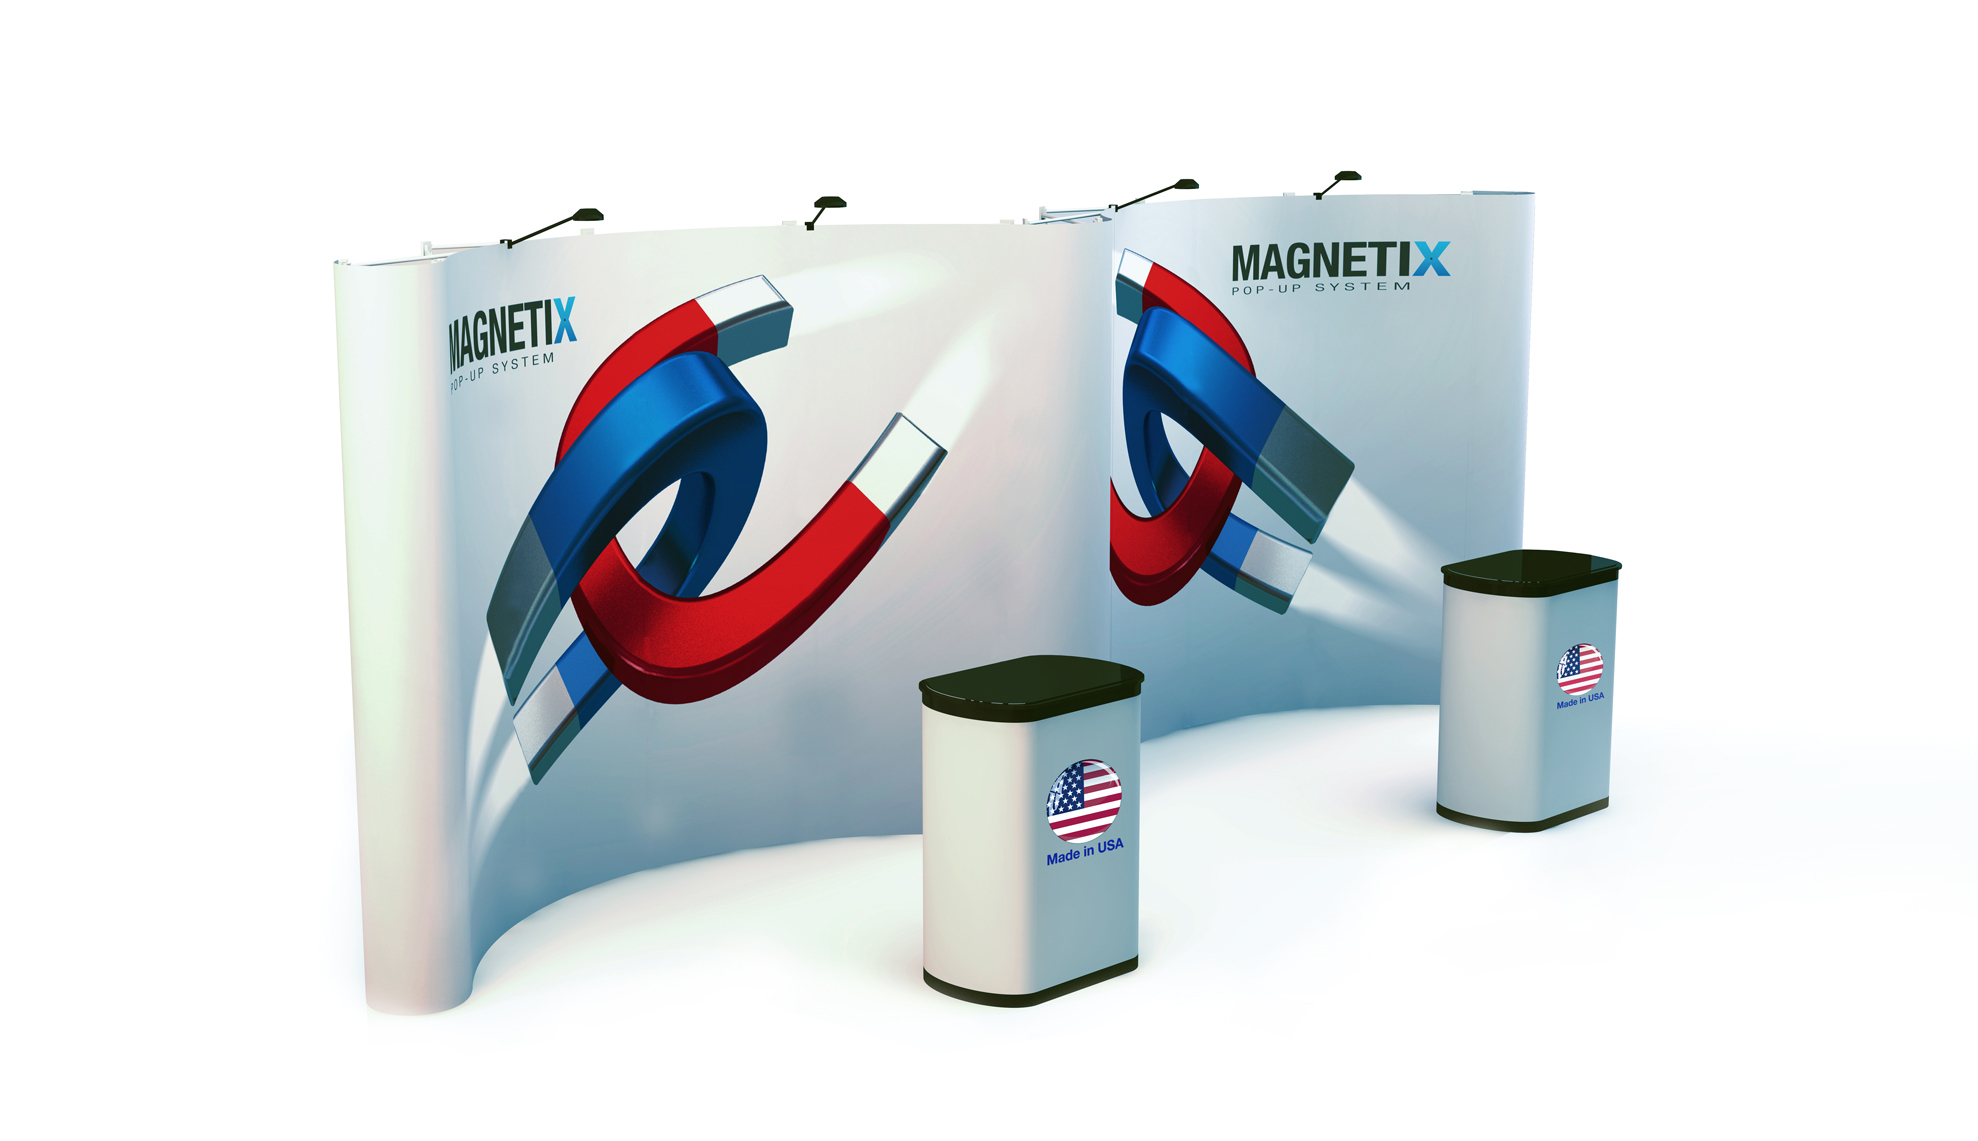 PLRM9-G11 Pop Up Trade Show Display | Magnetix